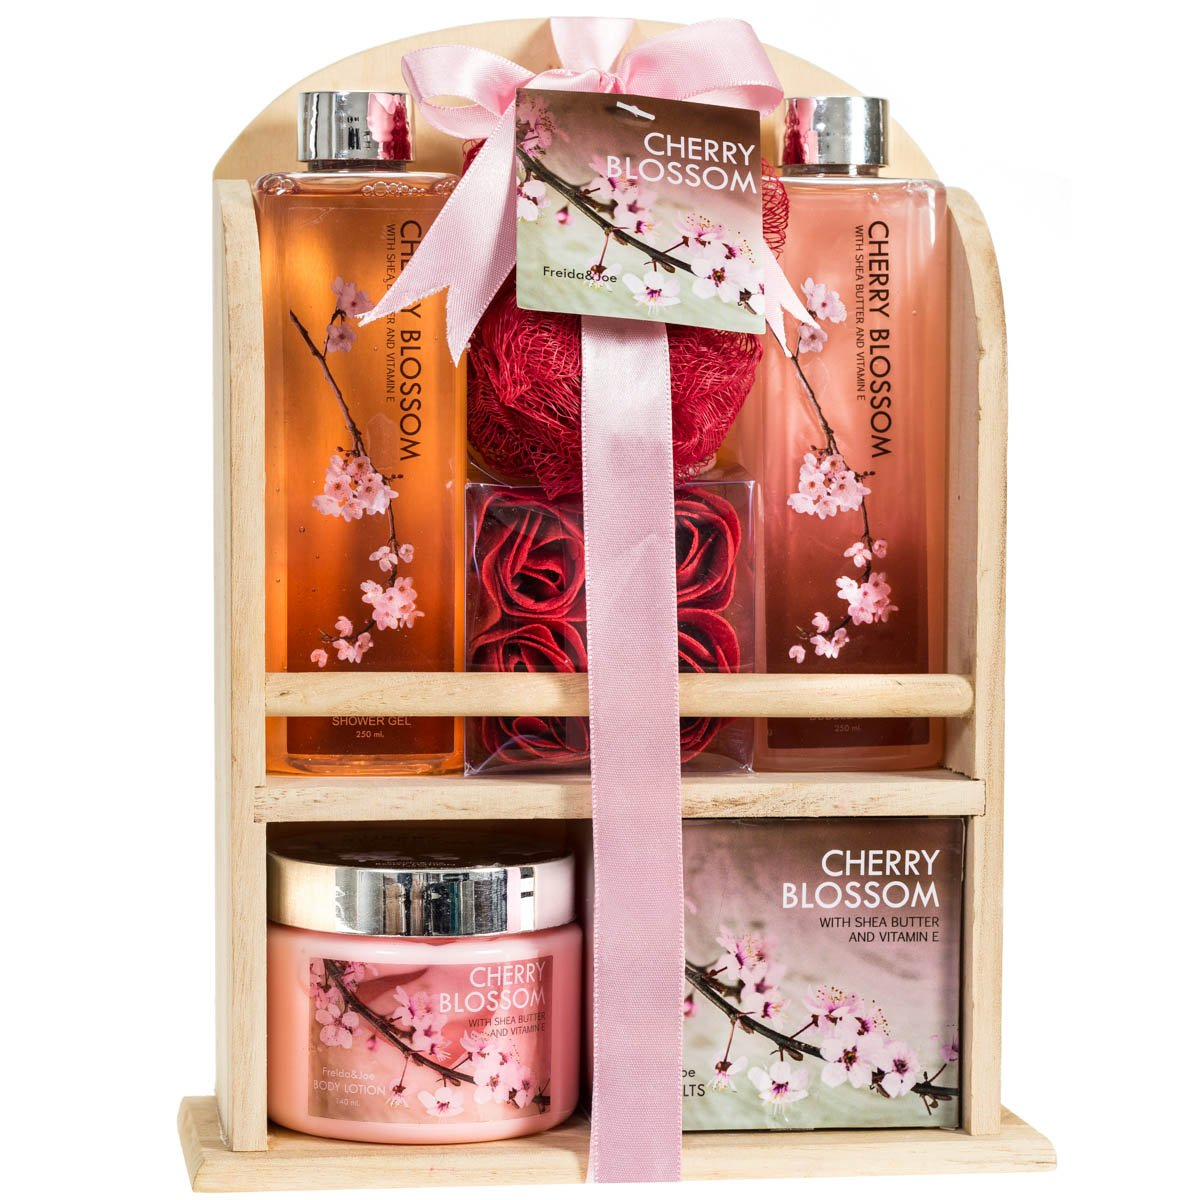 Deluxe Cherry Blossom Gift Set for Women: Indulge in Spring-Fresh Aromatic Luxury with Shower Gel, Bubble Bath, Bath Salts, Body Lotion, Bath Puff, and Rose Soaps in Gift Cabinet